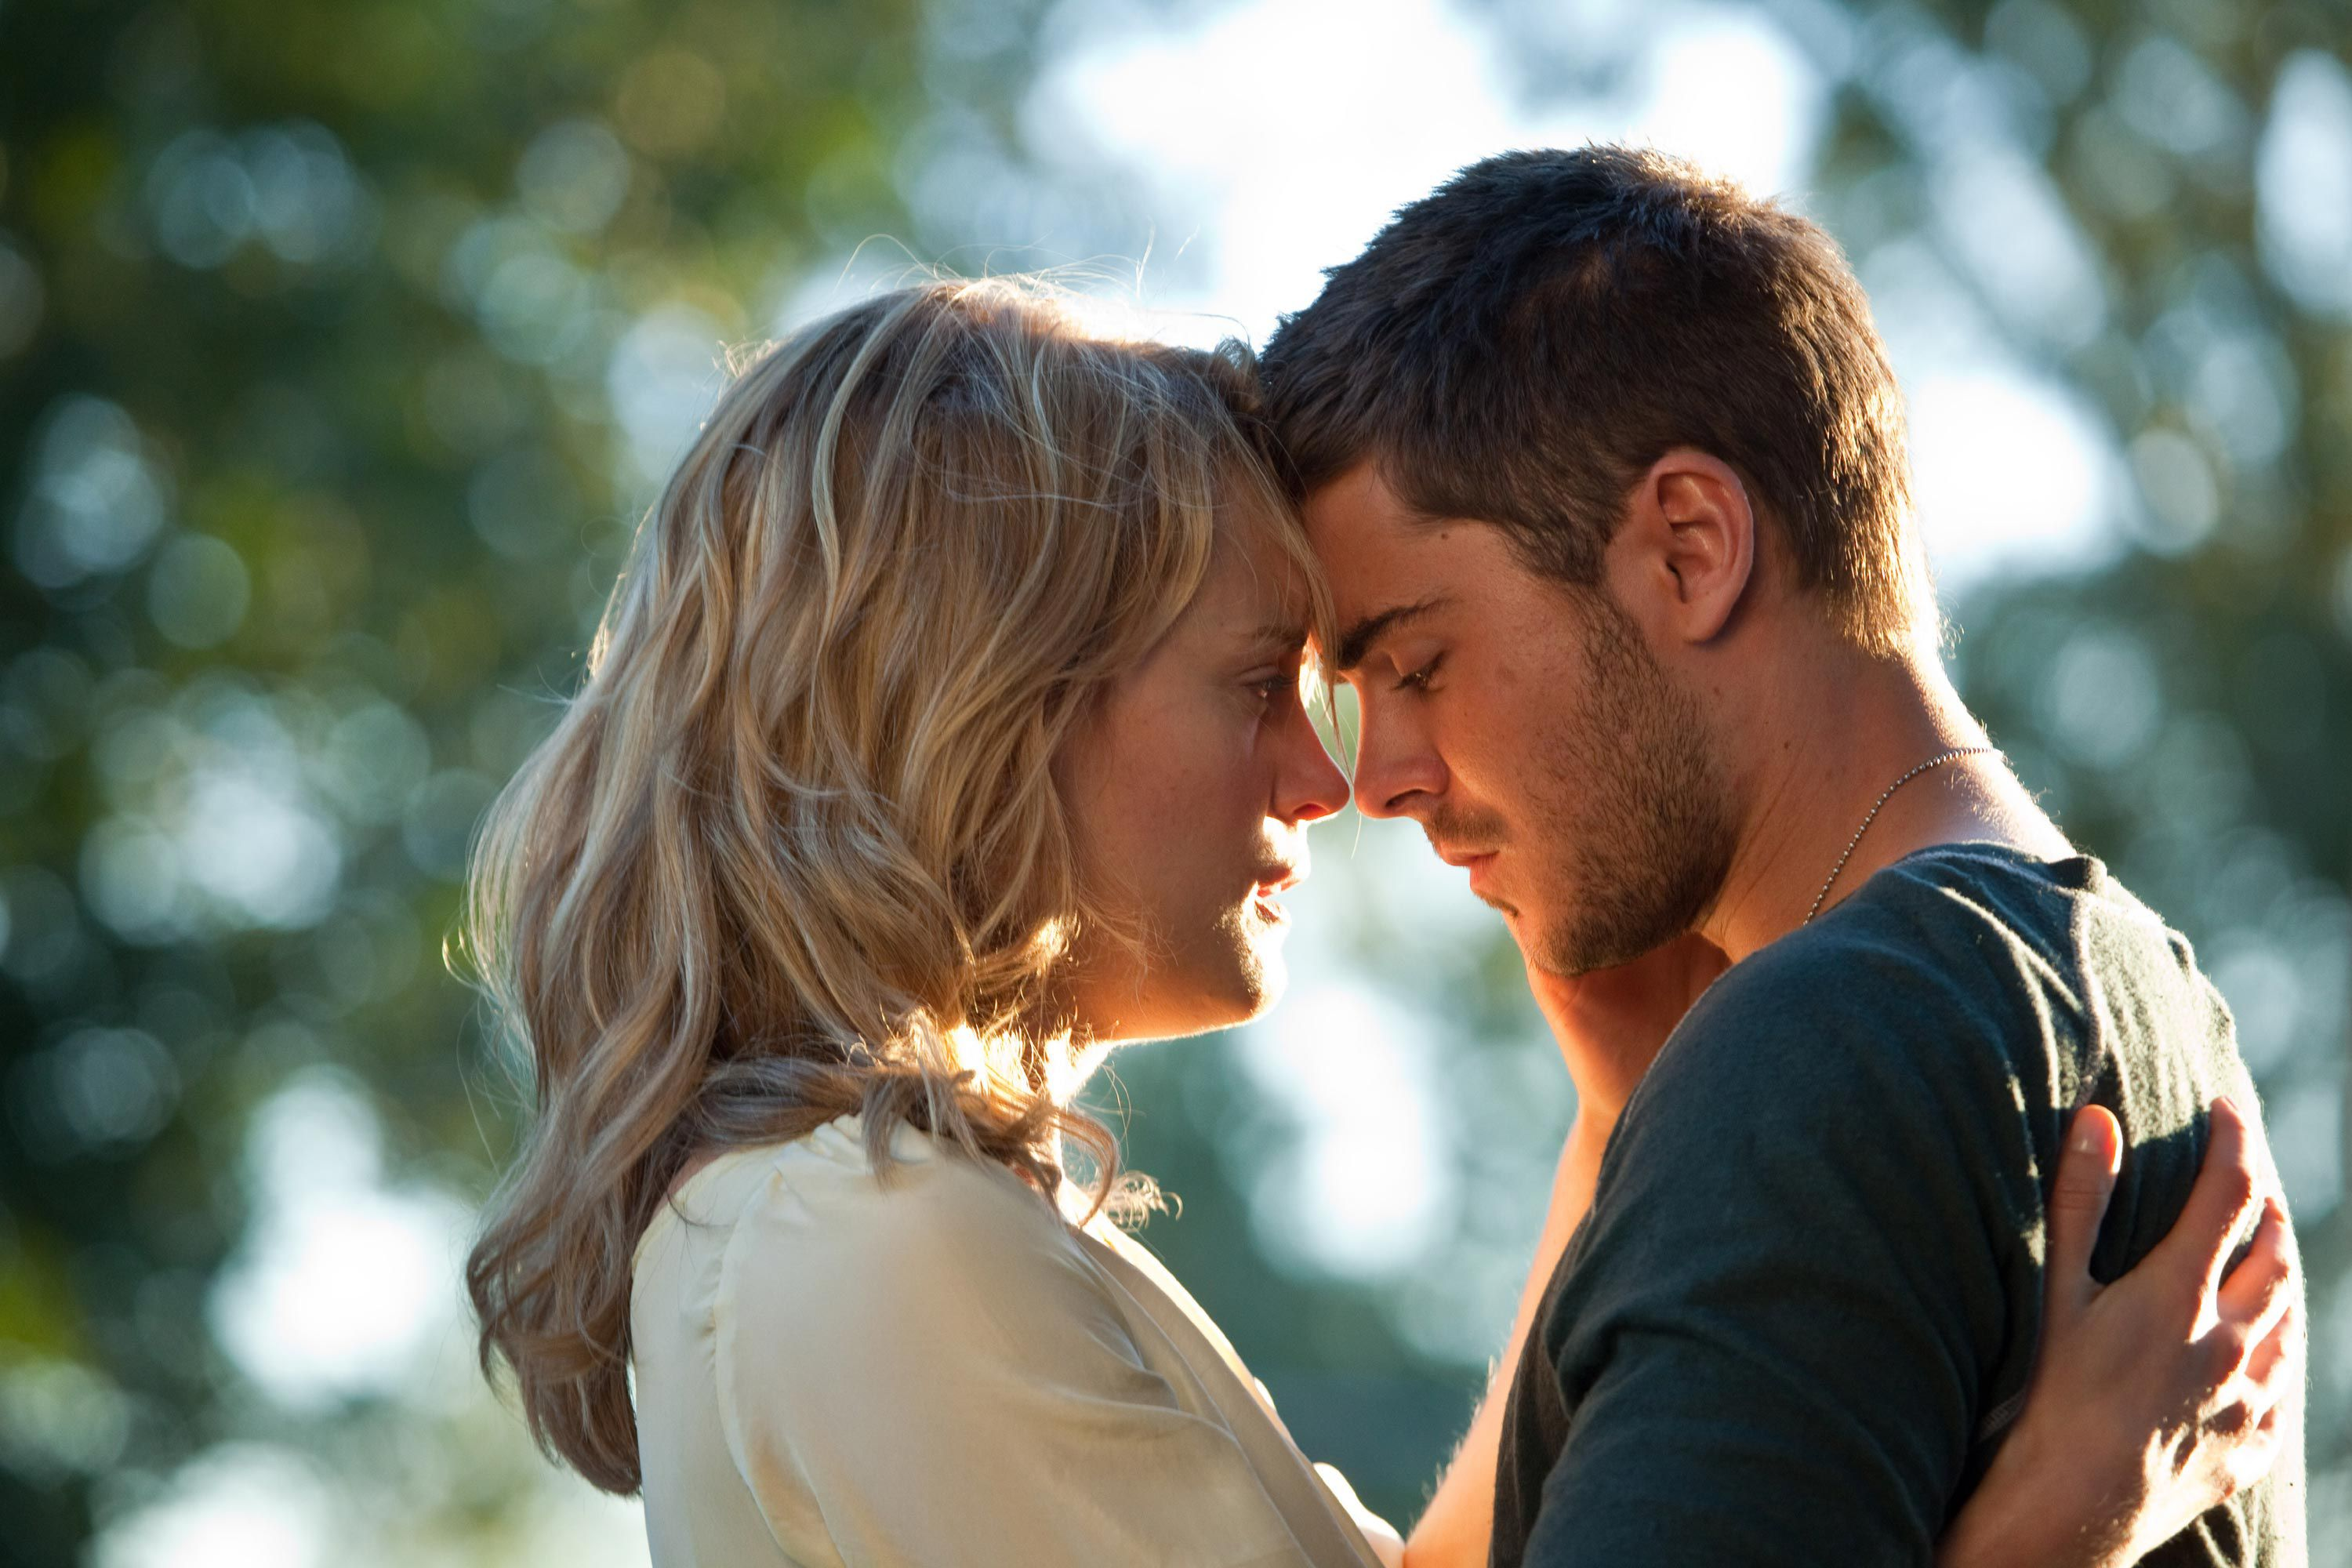 An image from The Lucky One